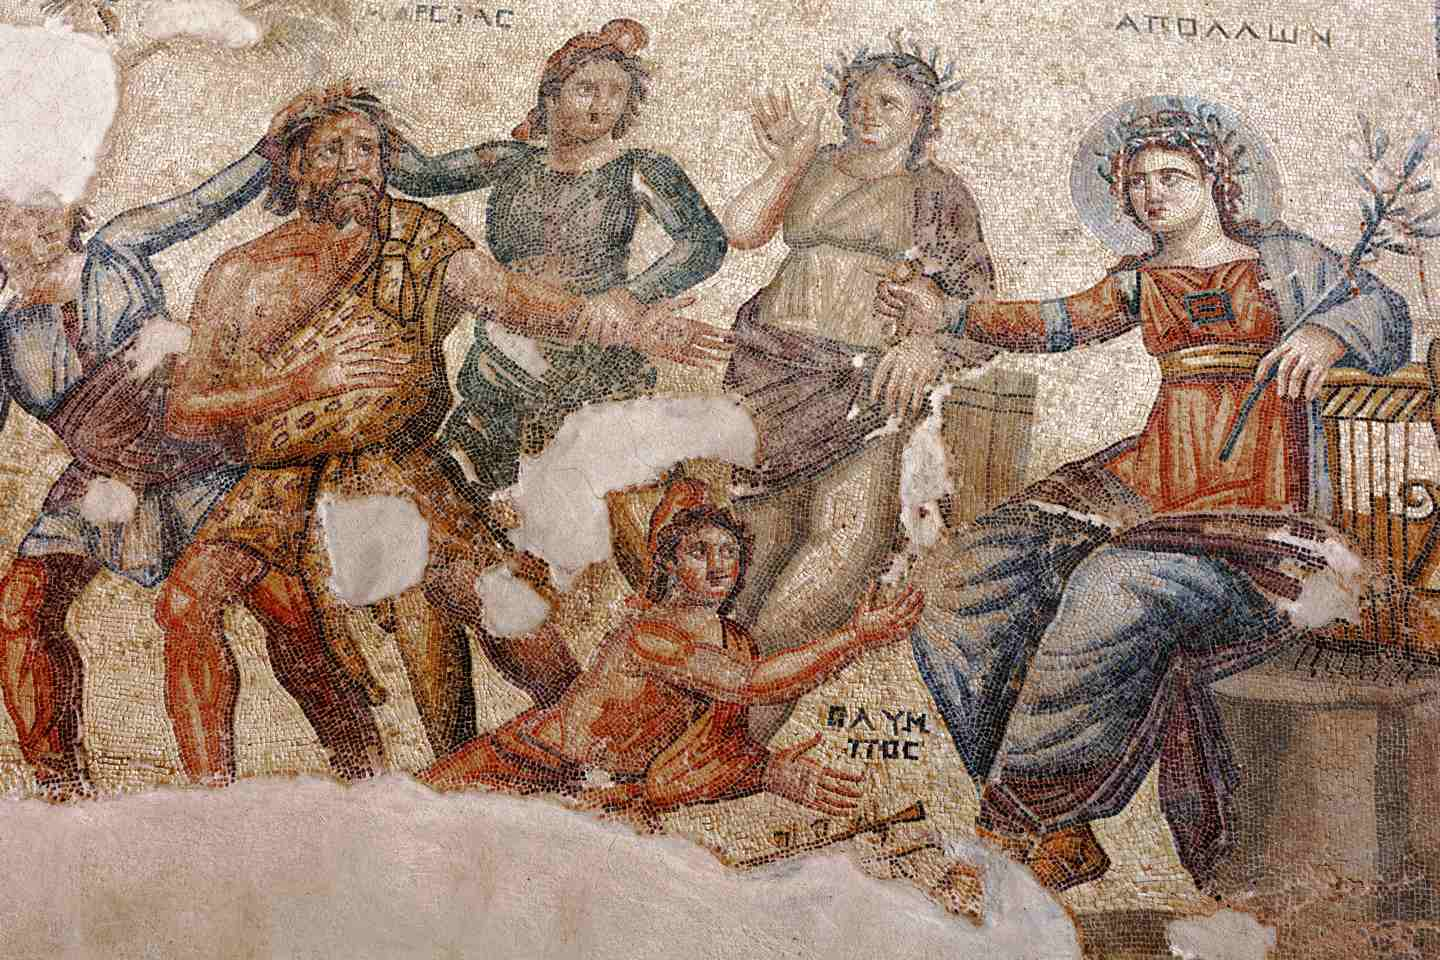 Chipre - Ancient mosaic in Kato Pafos Archaeological Park, Paphos, Cyprus